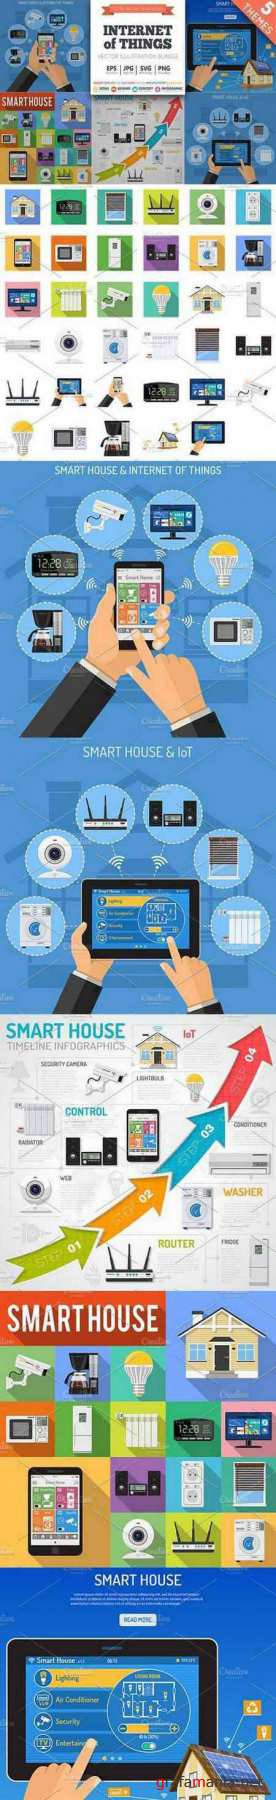 Smart House and internet of things 1493493